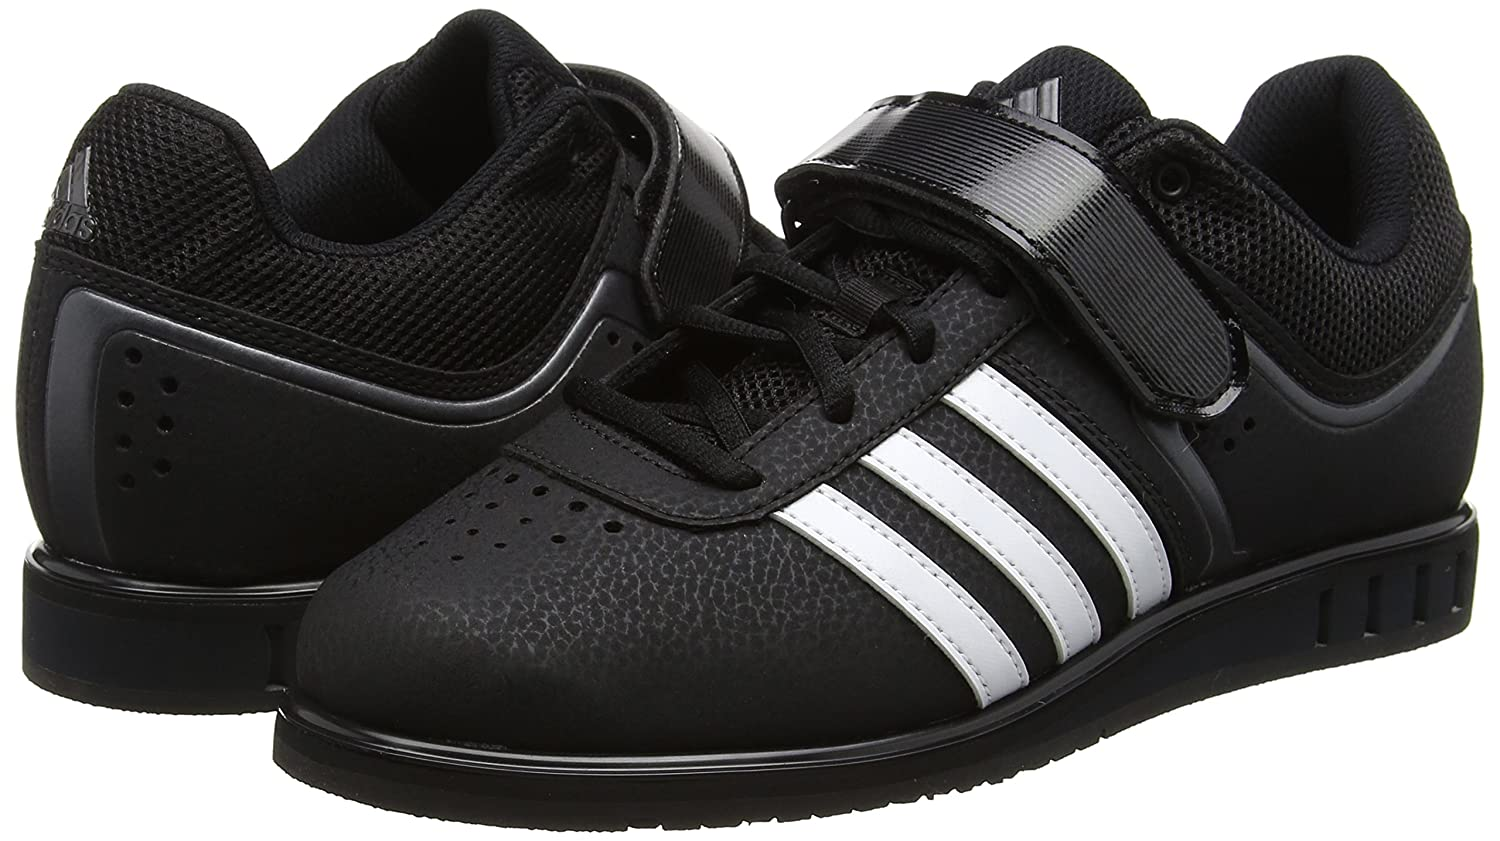 4cc2eeb965ba Amazon.com | Adidas Powerlift 2.0 Mens Weight Lifting Shoes - Black-UK 13 |  Shoes